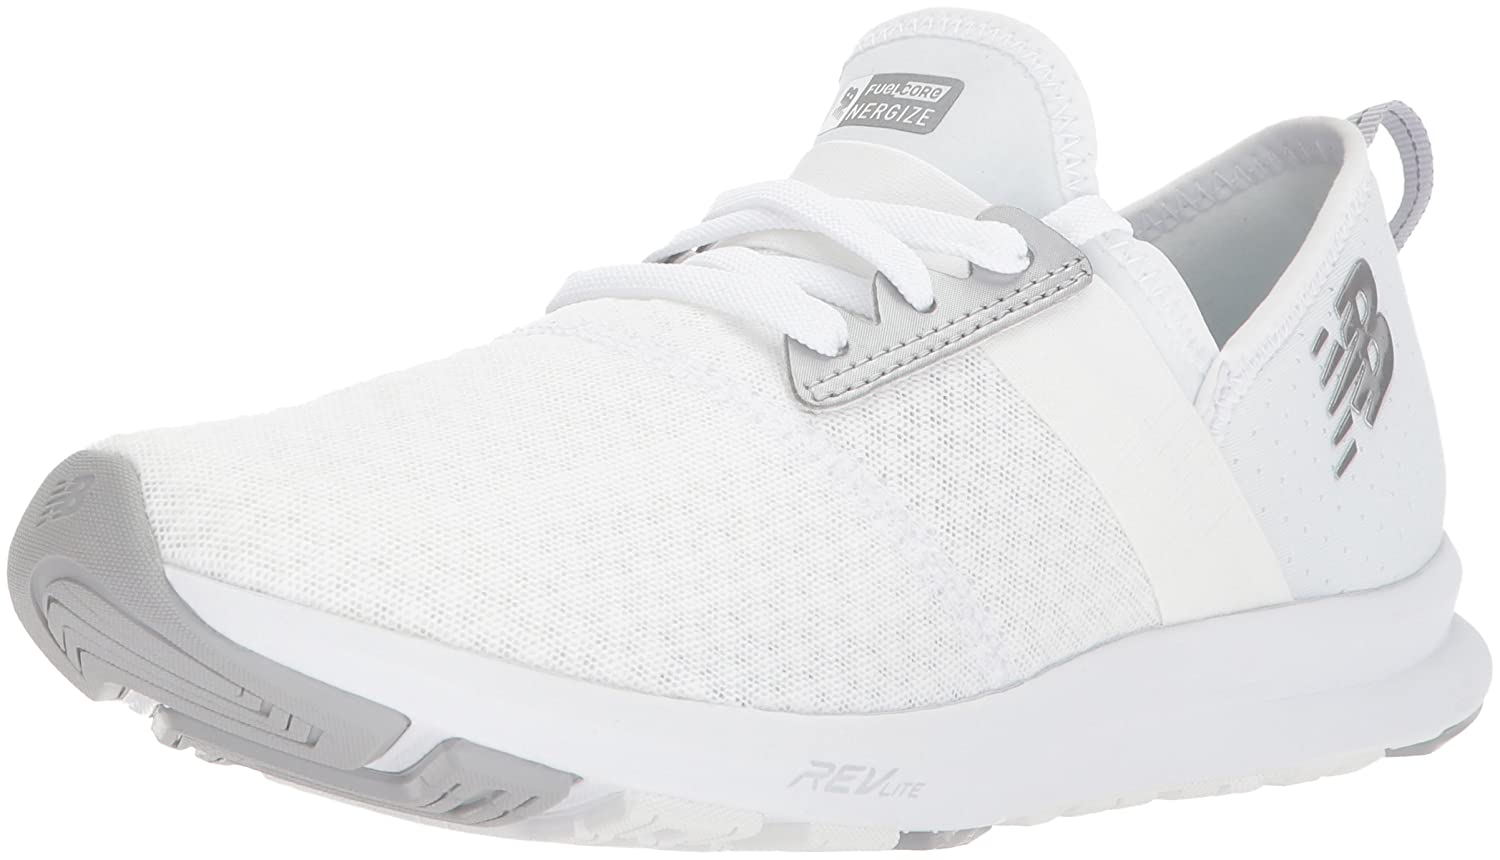 New Balance Women's FuelCore Nergize V1 Fuel Core Cross Trainer B06XSD3RDY 11 M US|White/White